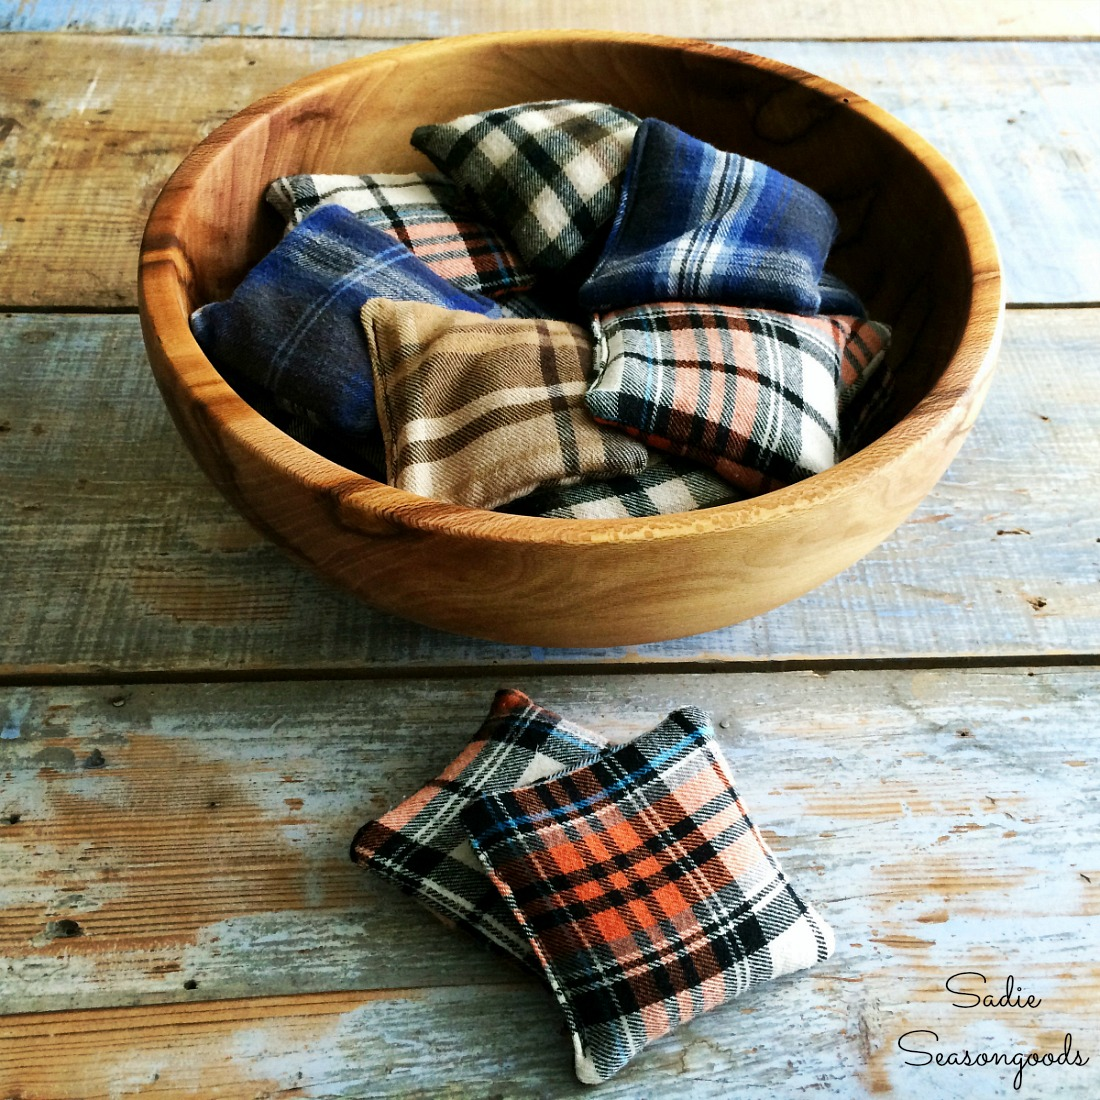 DIY hand warmers or football hand warmers that are a scrapbuster that uses flannel fabric from upcycled clothing for an autumn craft